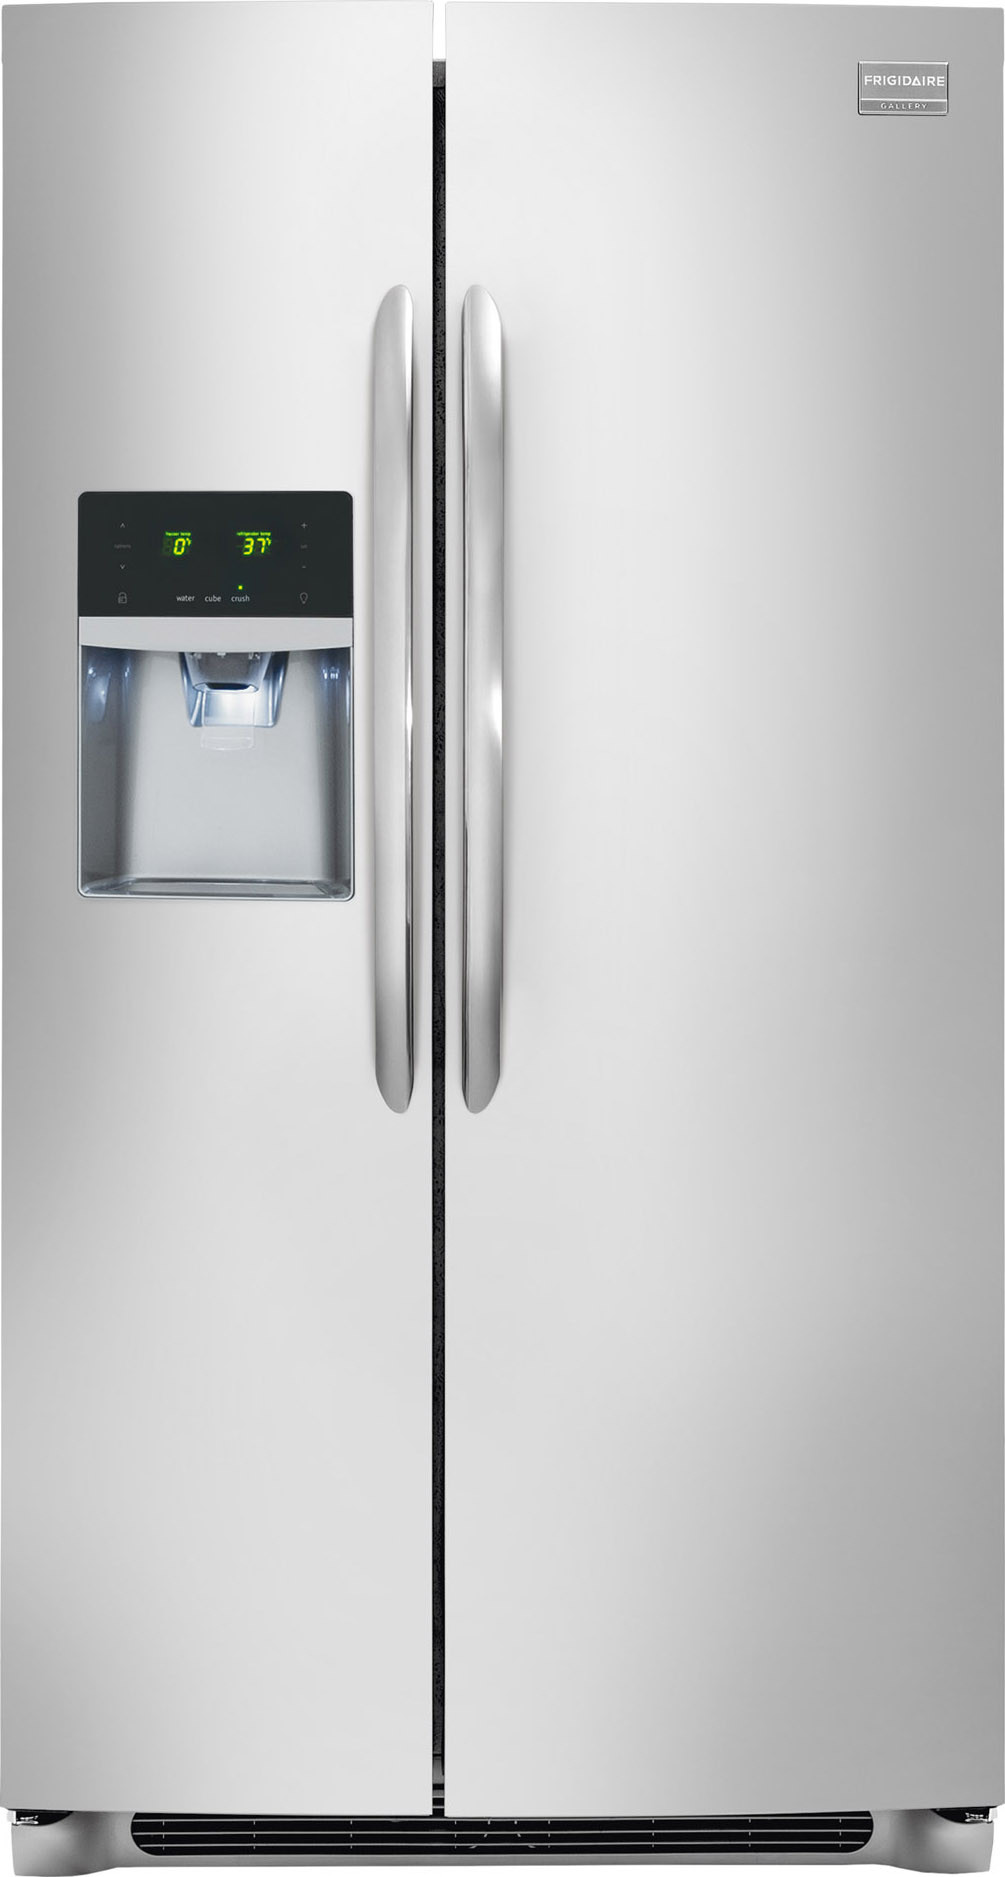 refrigerator 65 inches high. refrigerator 65 inches high